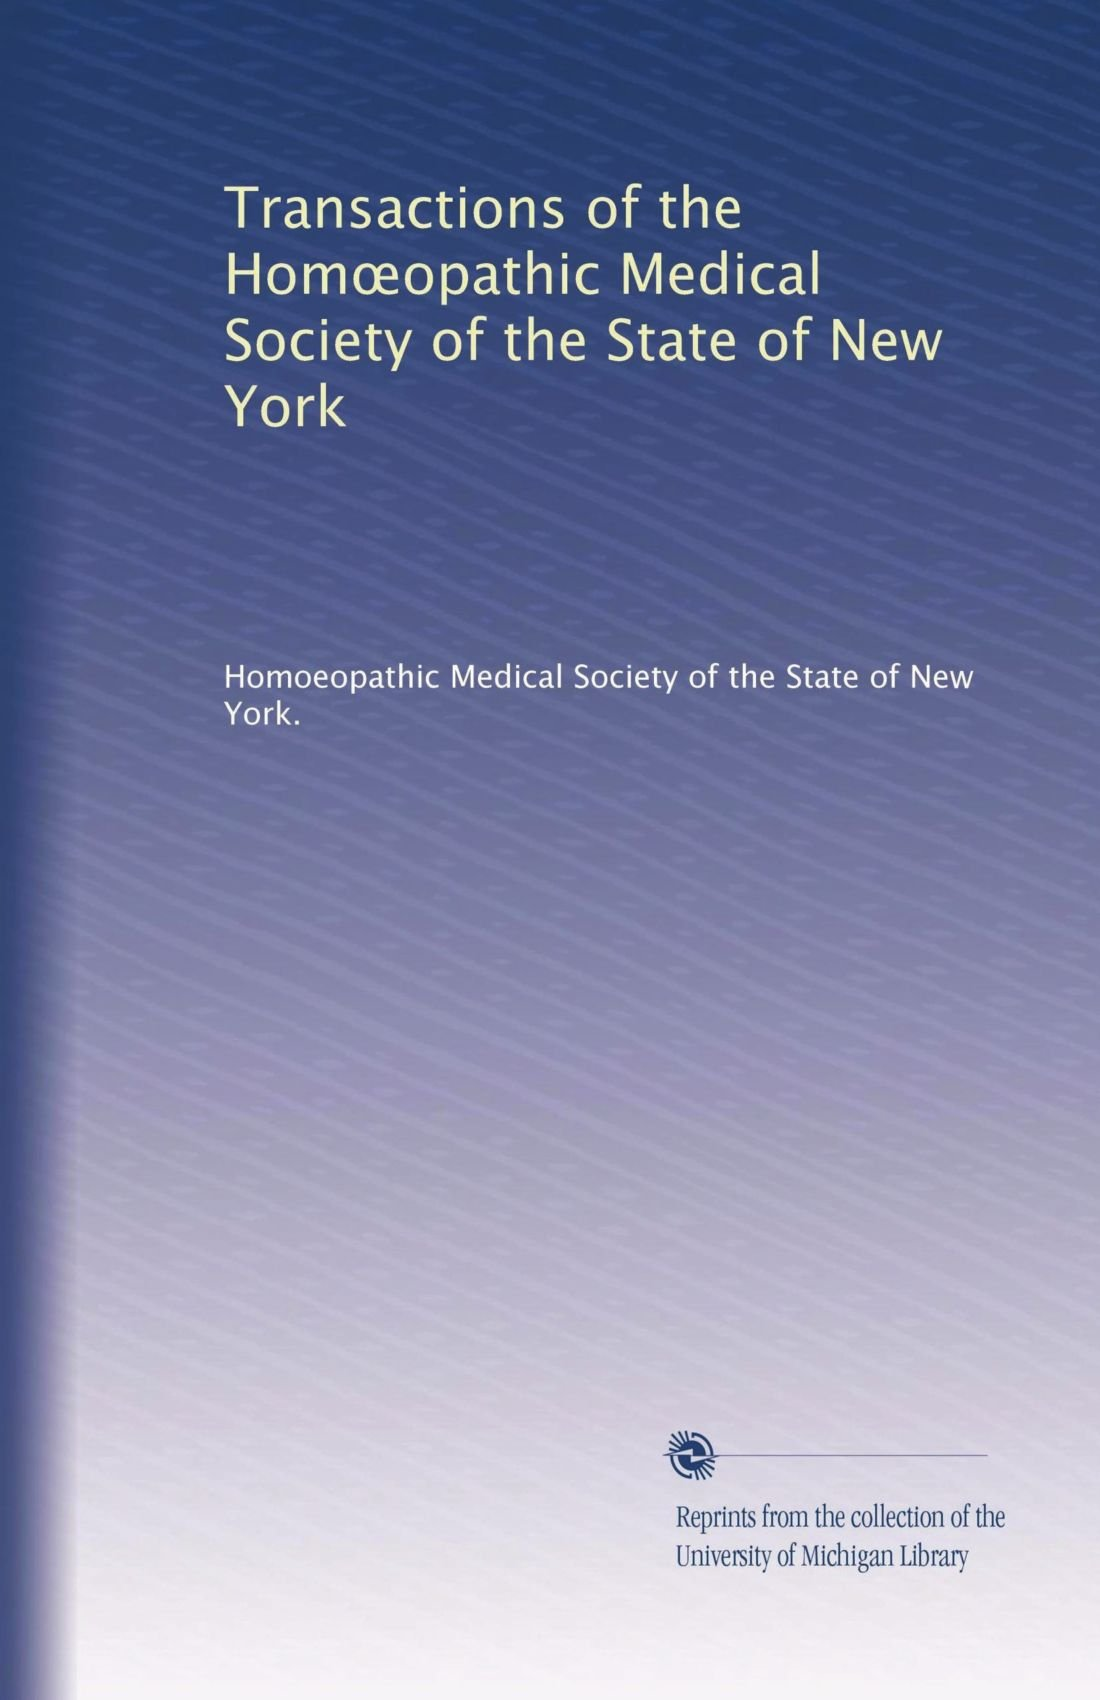 Transactions of the Hom?opathic Medical Society of the State of New York (Volume 23) ebook